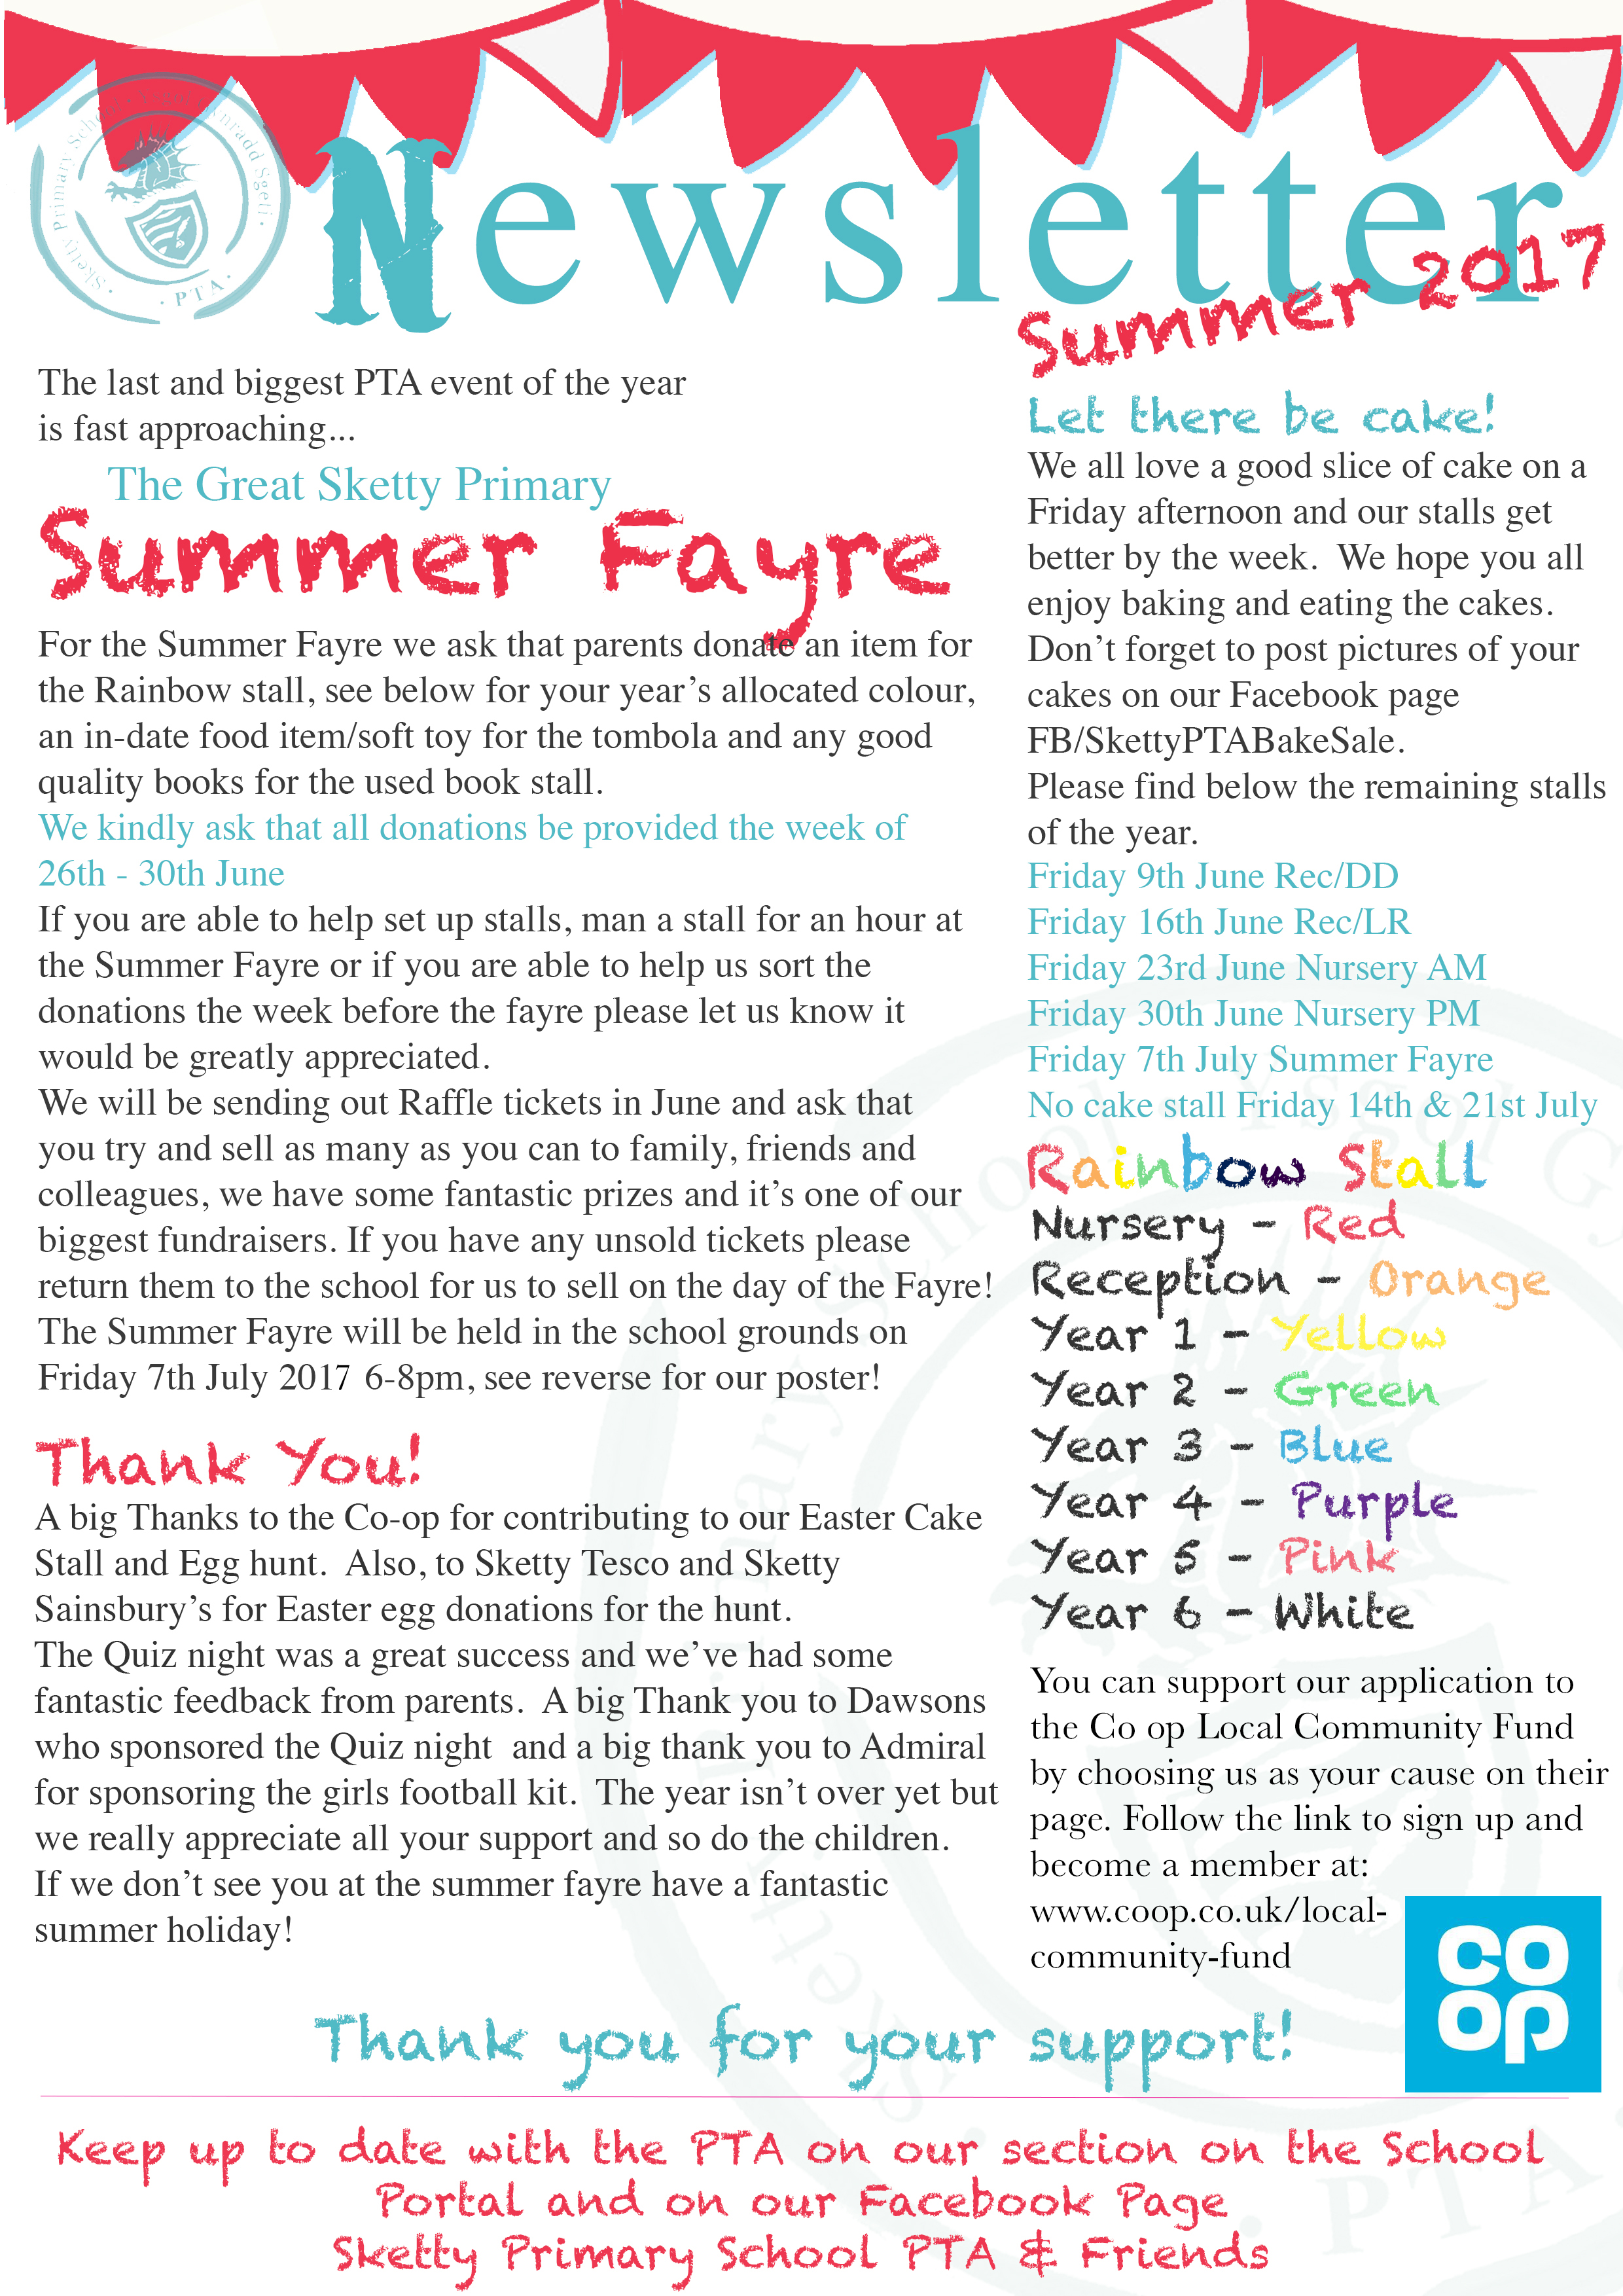 PTA-newsletter-2017 May Newsletter Templates on may newsletter sample, may newsletter cover, may newsletter background, may newsletter theme, calendar template, may school newsletter, may newsletter header, may newsletter title, may newsletter clipart,